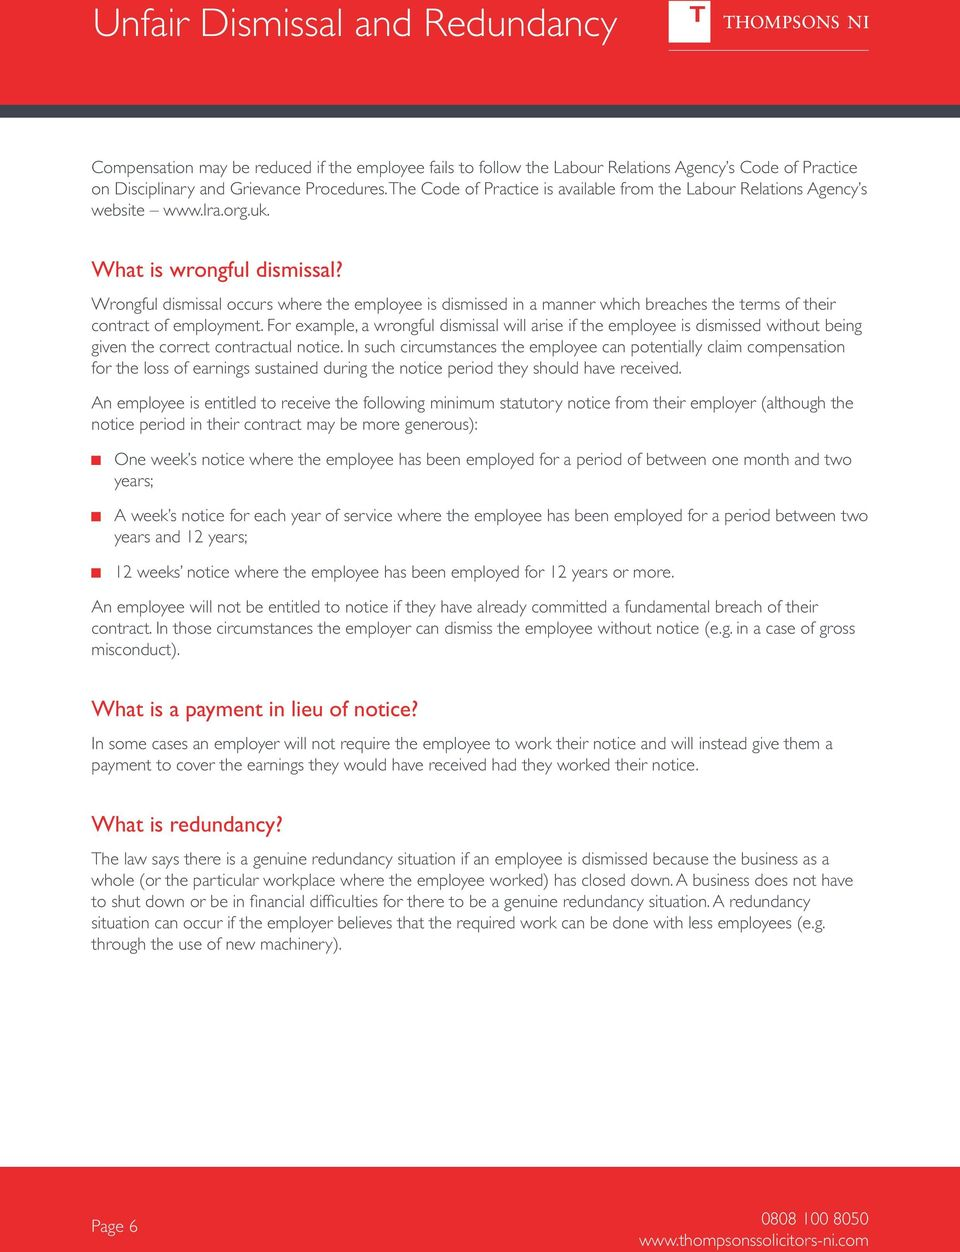 Wrongful dismissal occurs where the employee is dismissed in a manner which breaches the terms of their contract of employment.